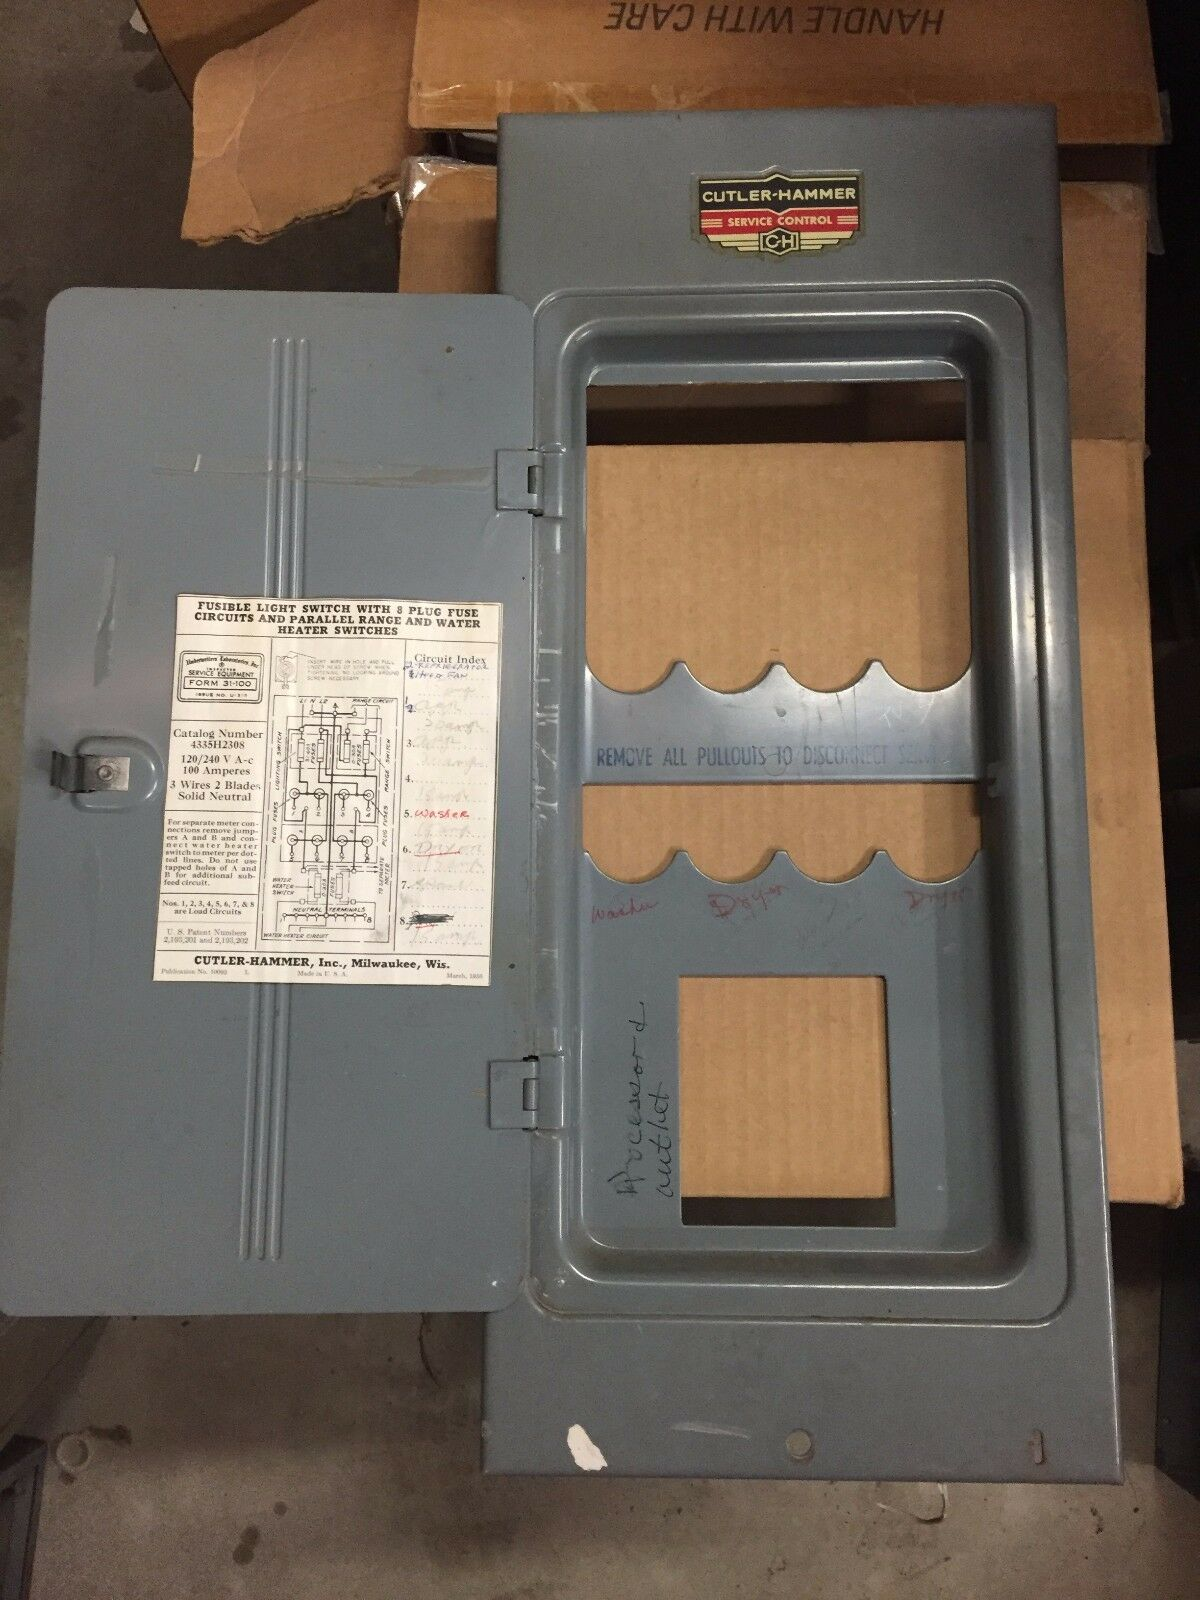 Cutler Hammer Cat No 4335h2308 Fuse Panel Cover Door Ebay Box Norton Secured Powered By Verisign